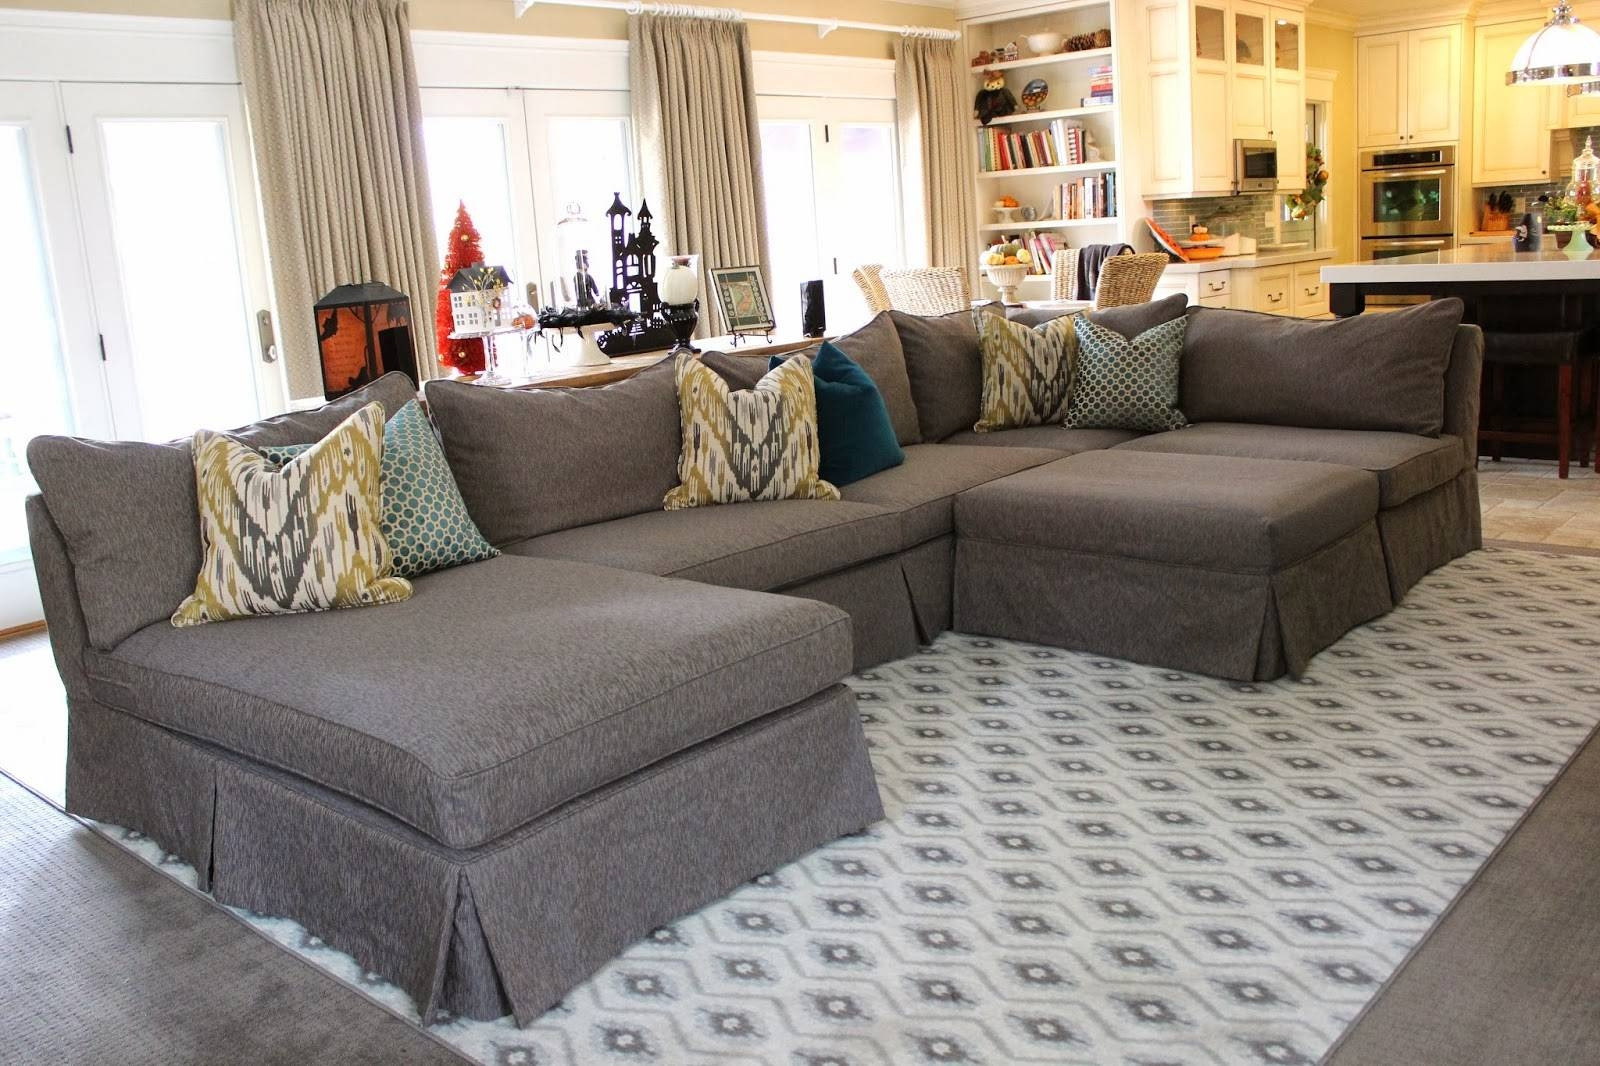 Furniture: Pretty Slipcovered Sectional Sofa For Comfy Your Living within Slipcover for Leather Sectional Sofas (Image 9 of 30)